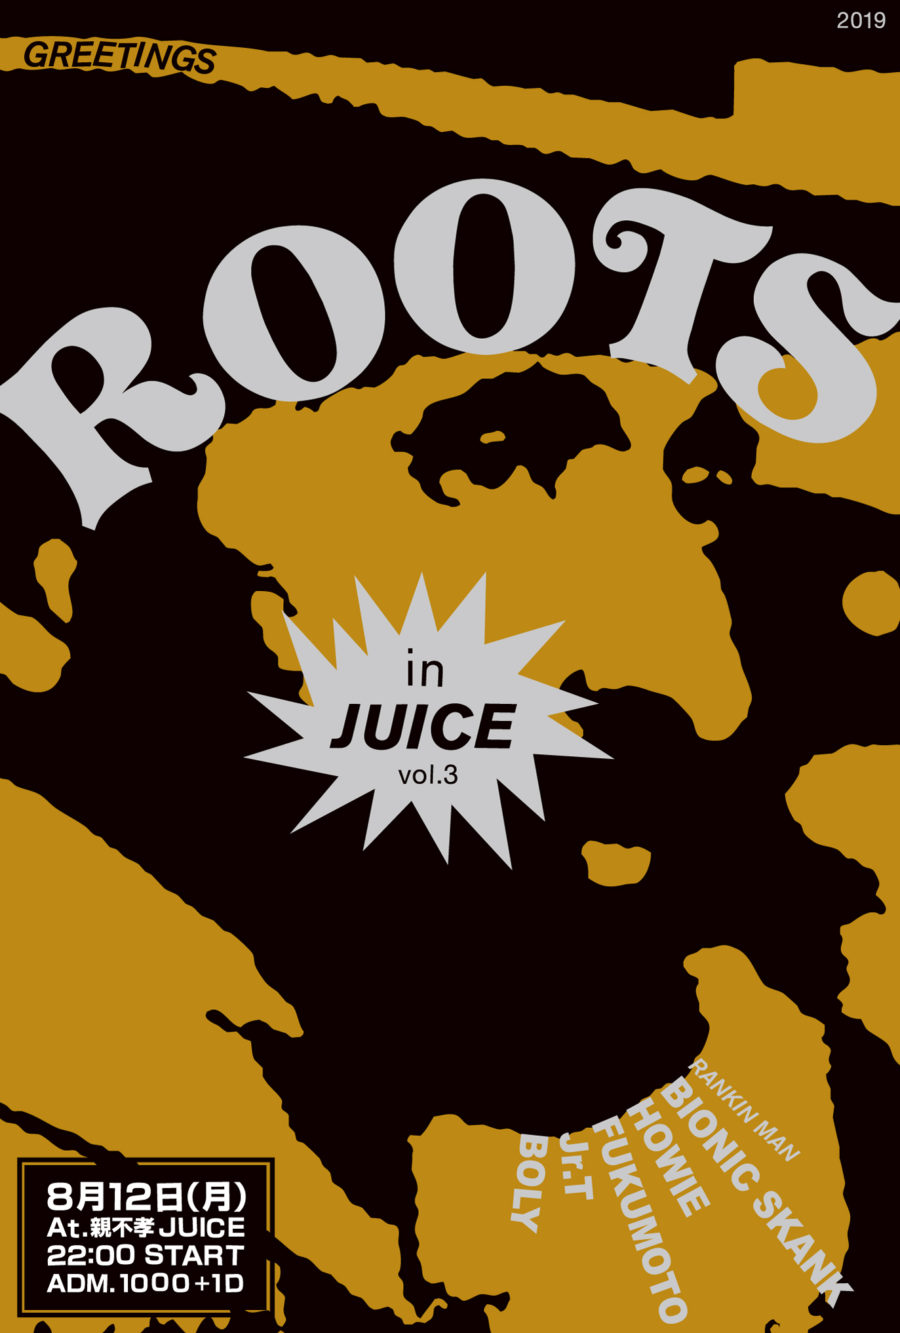 ROOTS in JUICE